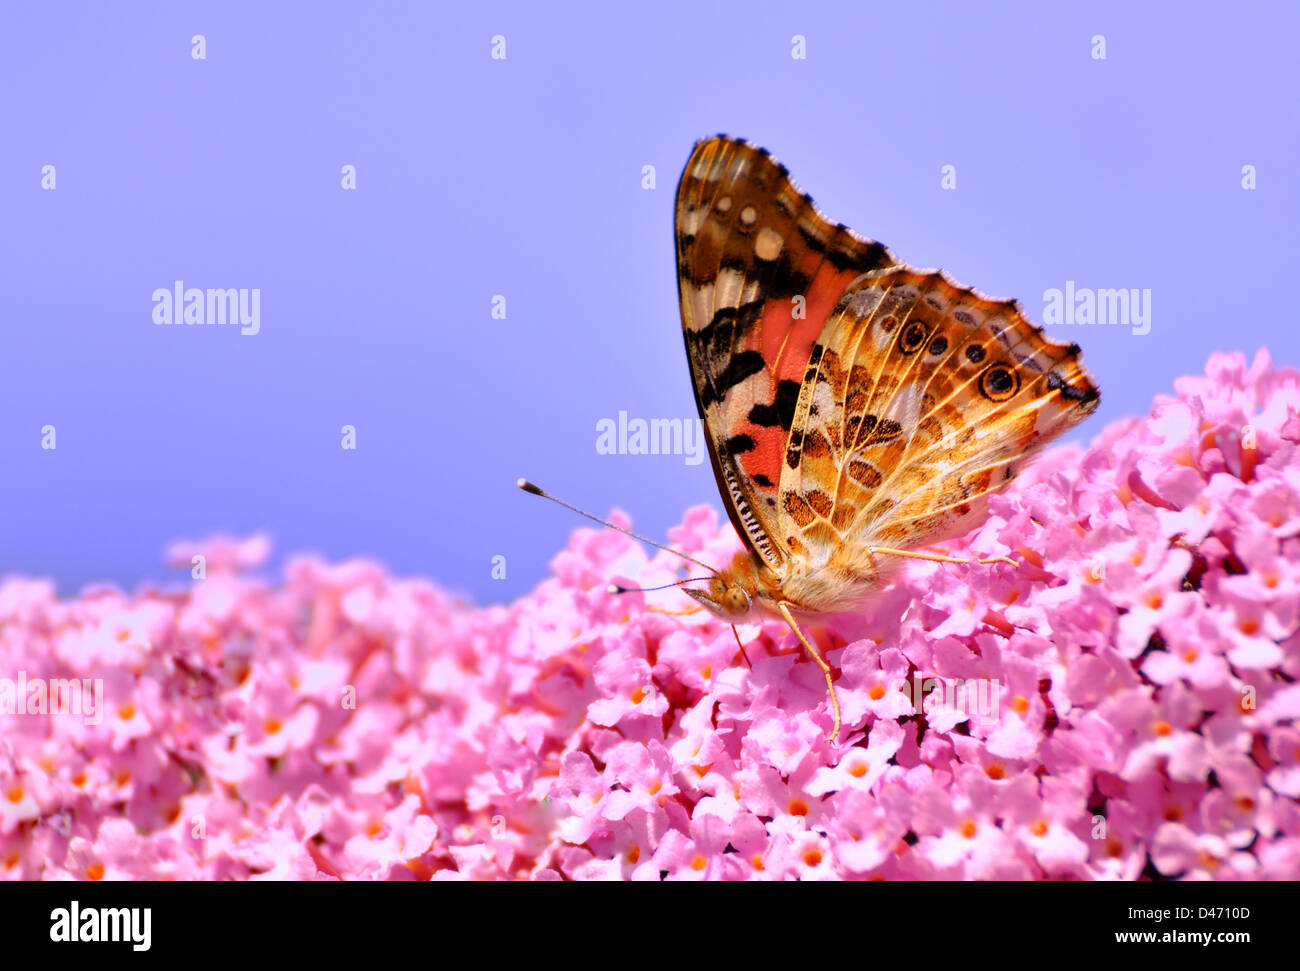 A Painted Lady on Lilac flower. - Stock Image